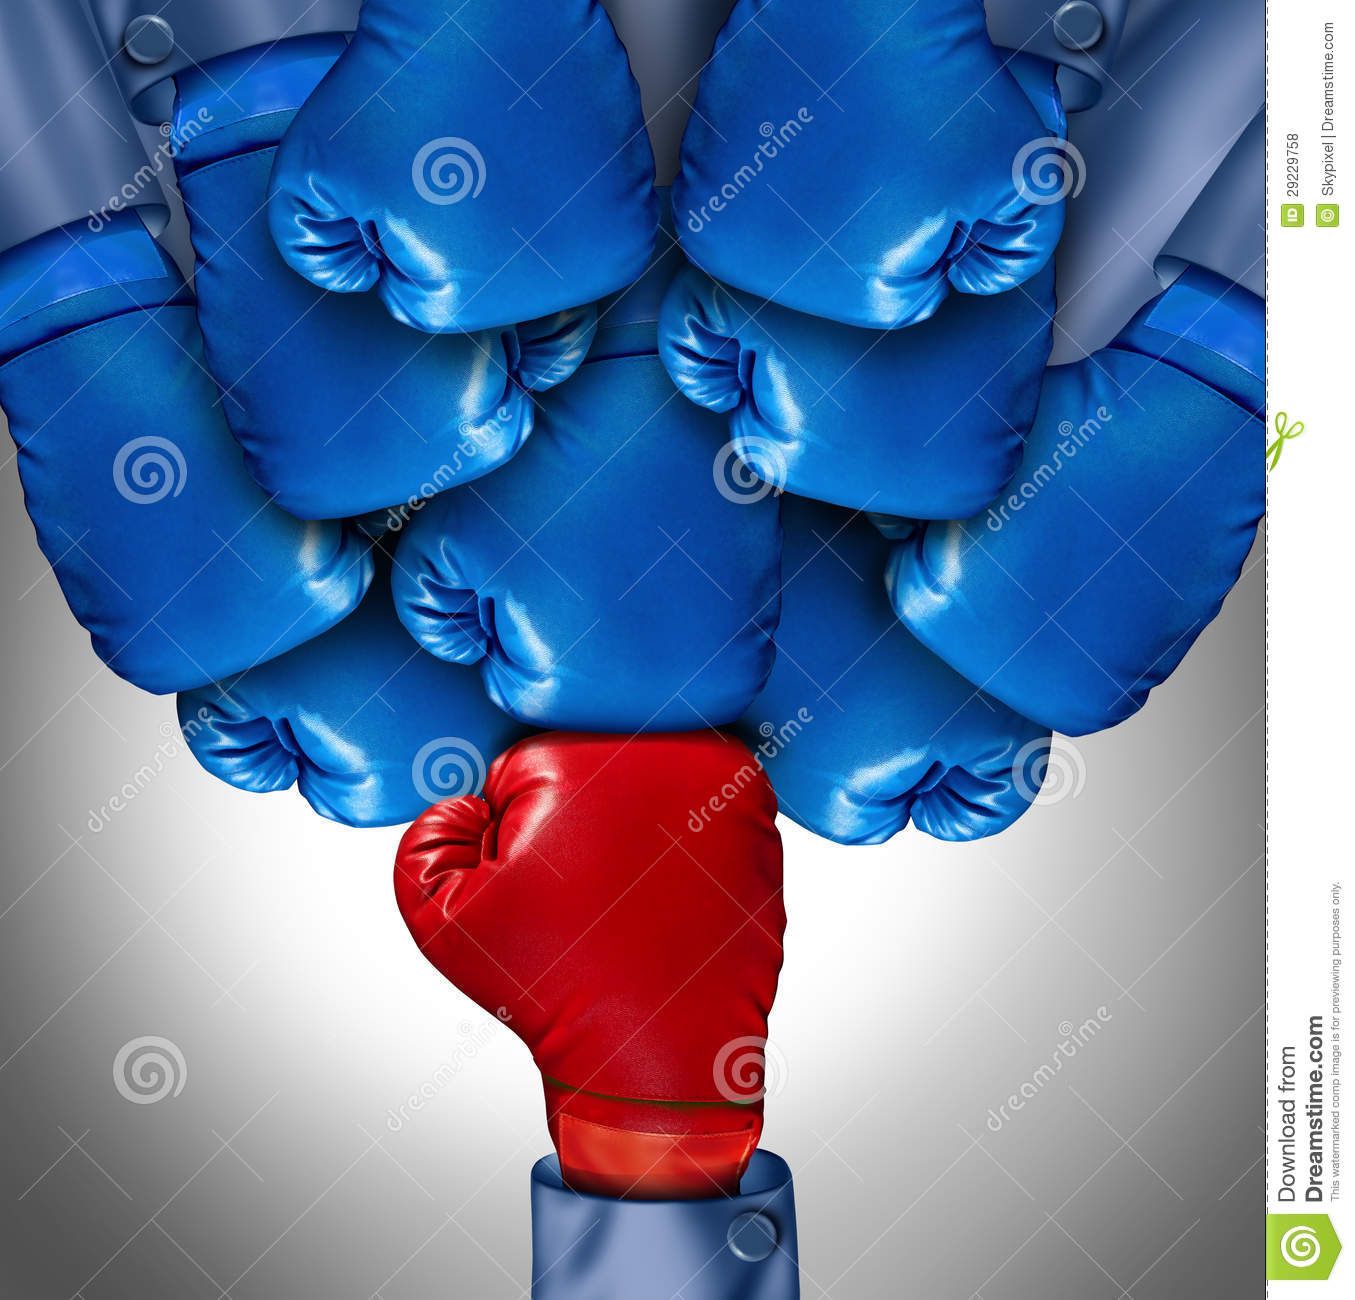 ... boxing gloves ganging up on a single red glove as a business symbol of